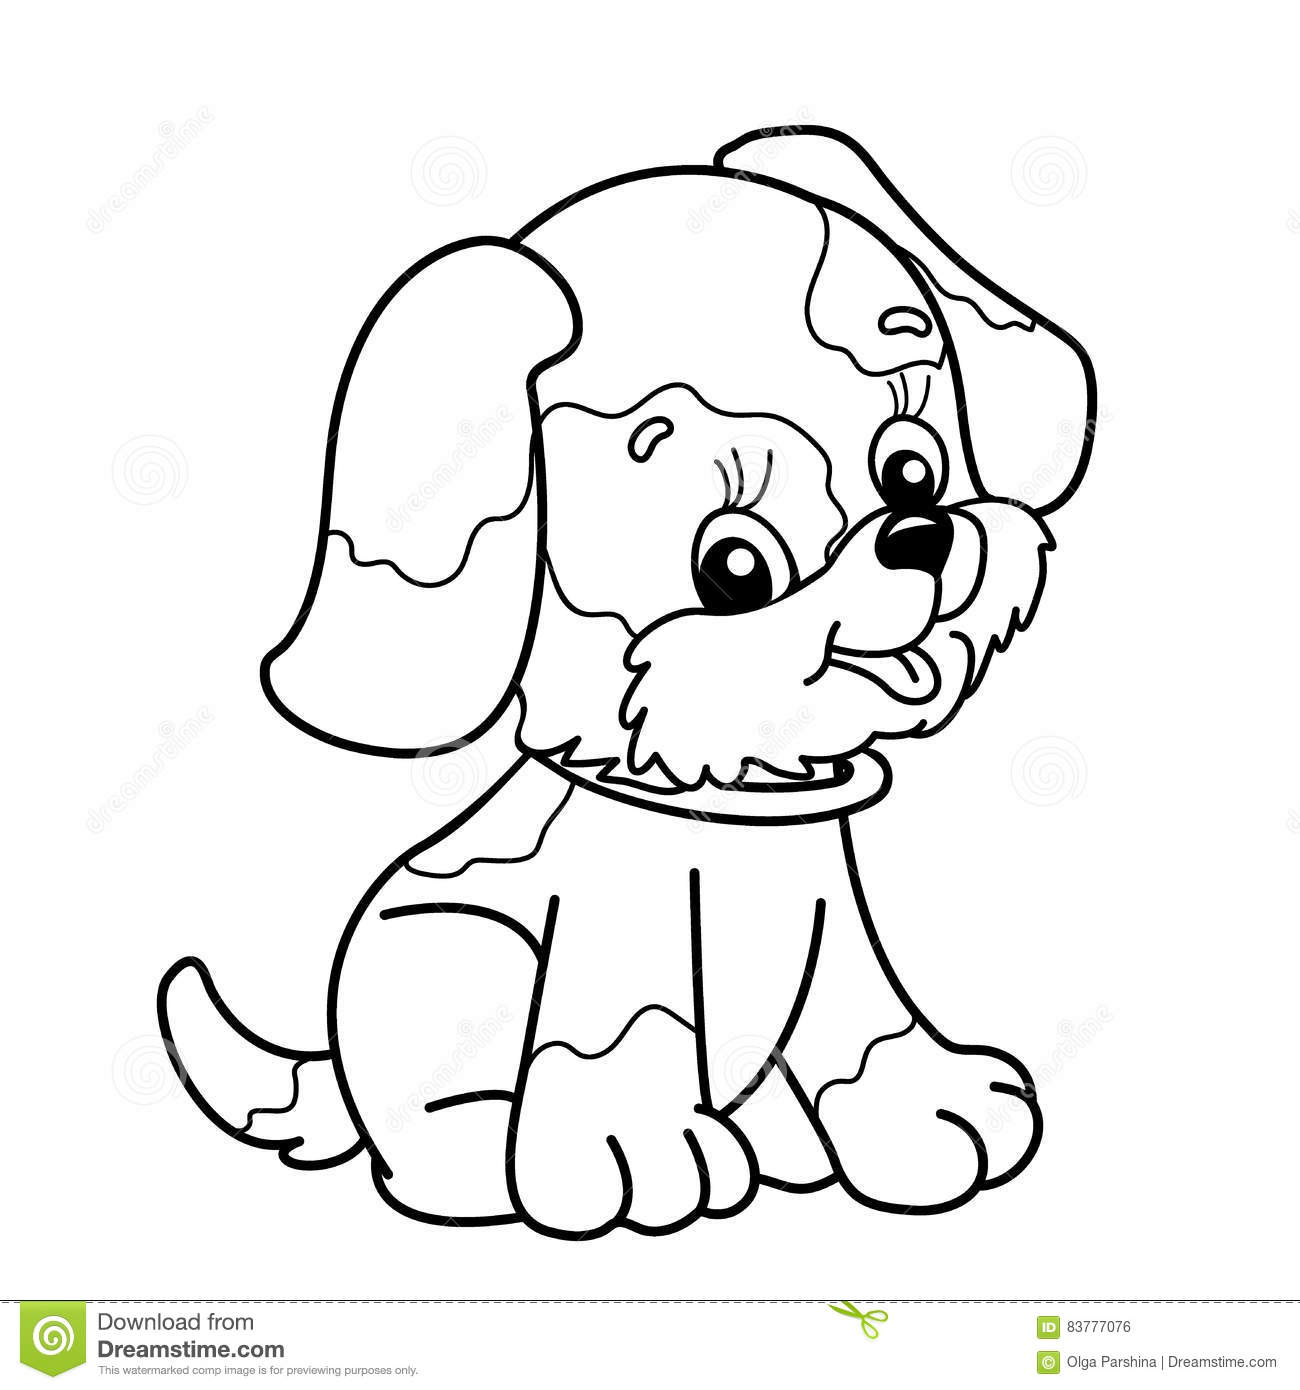 Coloring Page Outline Of Cartoon Dog Cute Puppy Sitting